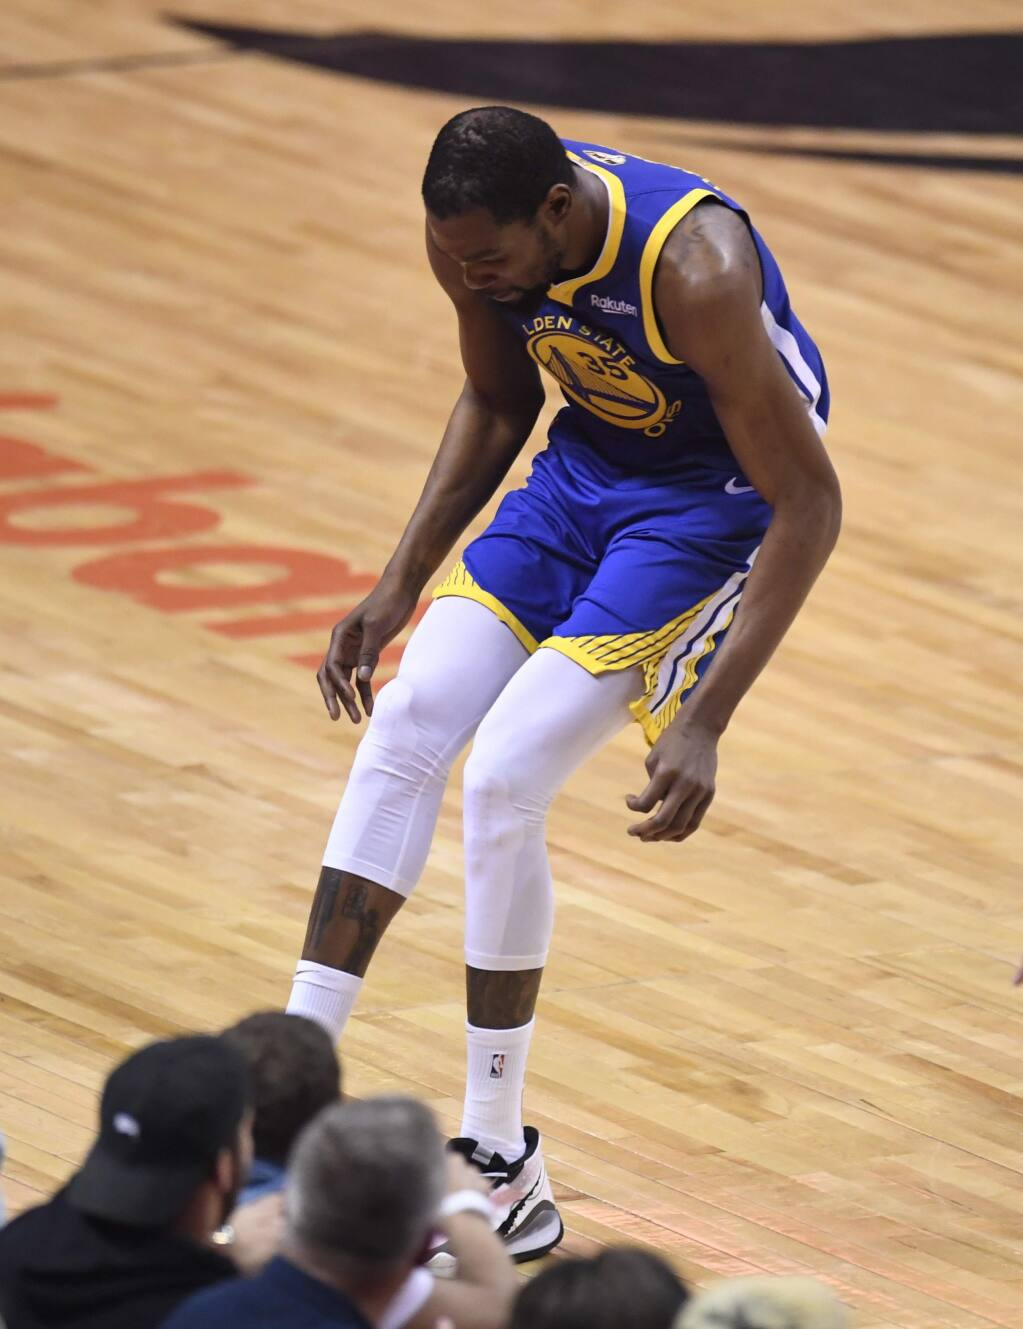 Golden State Warriors forward Kevin Durant hobbles after injuring his right leg during first-half action in Game 5 of the NBA Finals against the Toronto Raptors in Toronto, Monday, June 10, 2019. (Frank Gunn/The Canadian Press via AP)